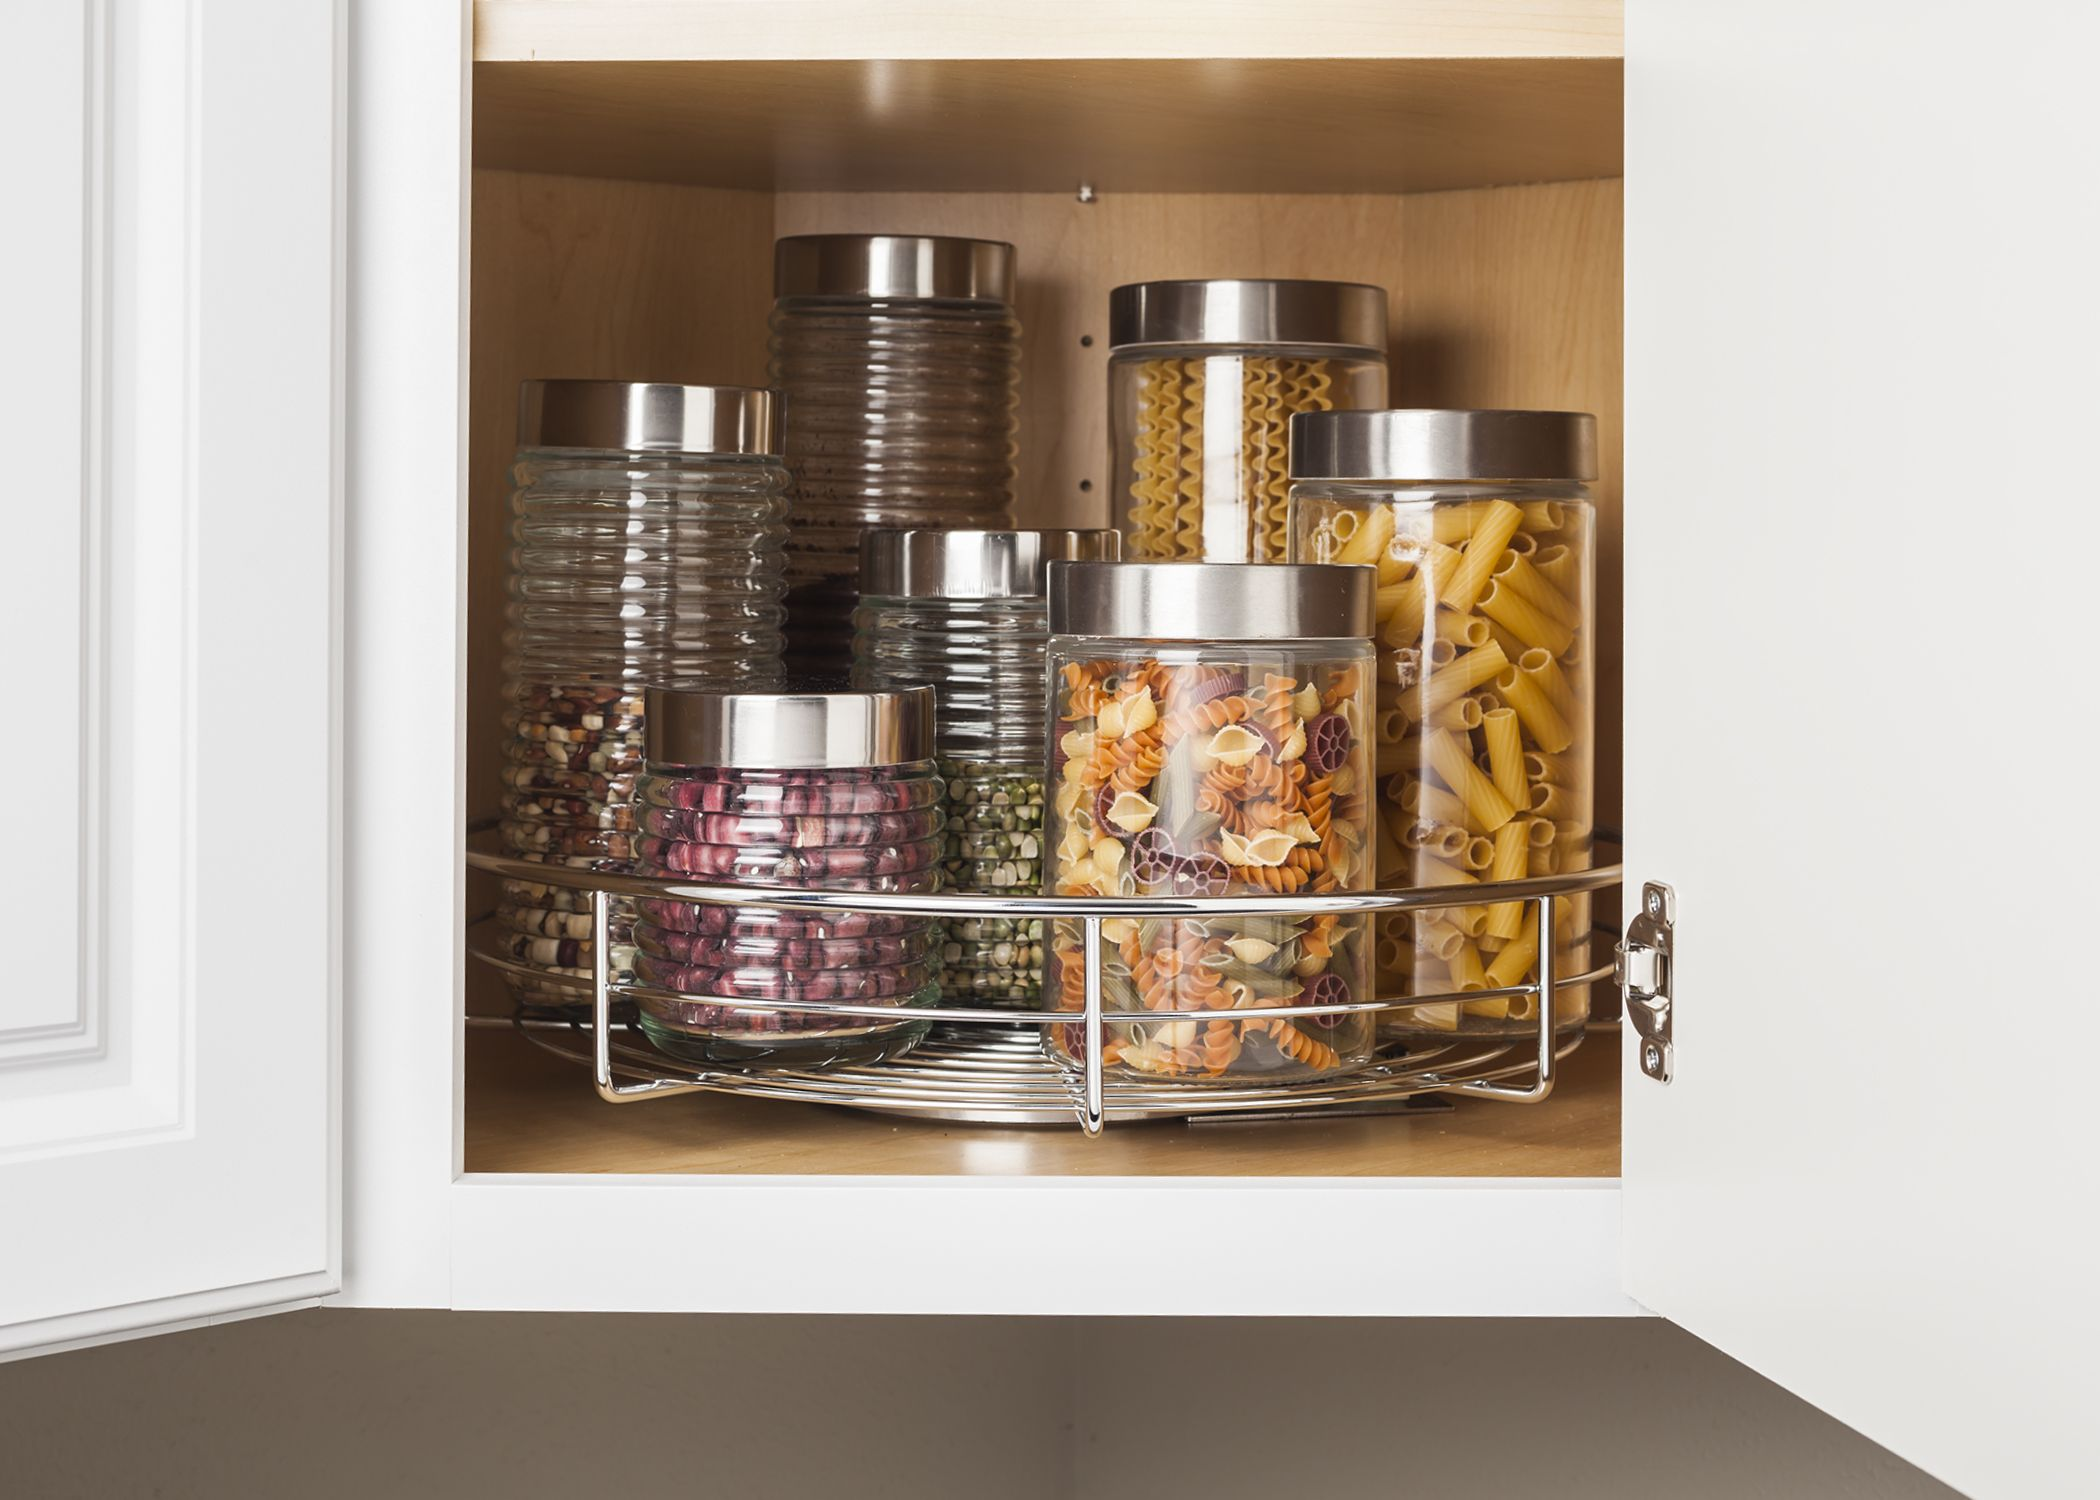 organiser larder ideas organization racks vuelosfera collection tidy full kitchen with organizer stand and design storage shelves best cupboard store food alone closet organizers systems drawers on awesome of large cabinet container pantry shelf cabinets size tall freestanding